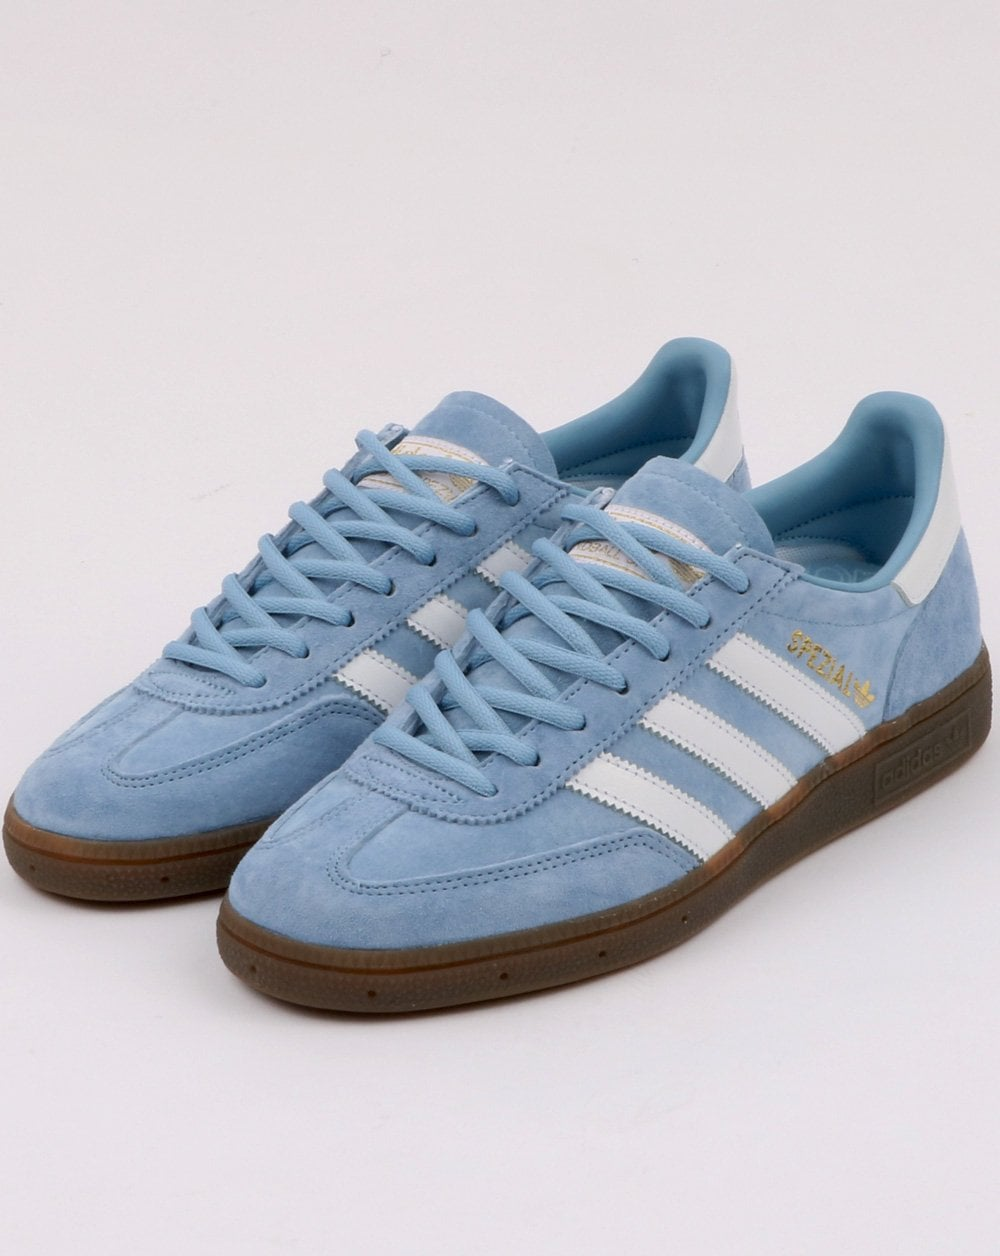 new product 26397 ef856 The adidas SPEZIAL Trainer First Originated As An Indoor Handball .